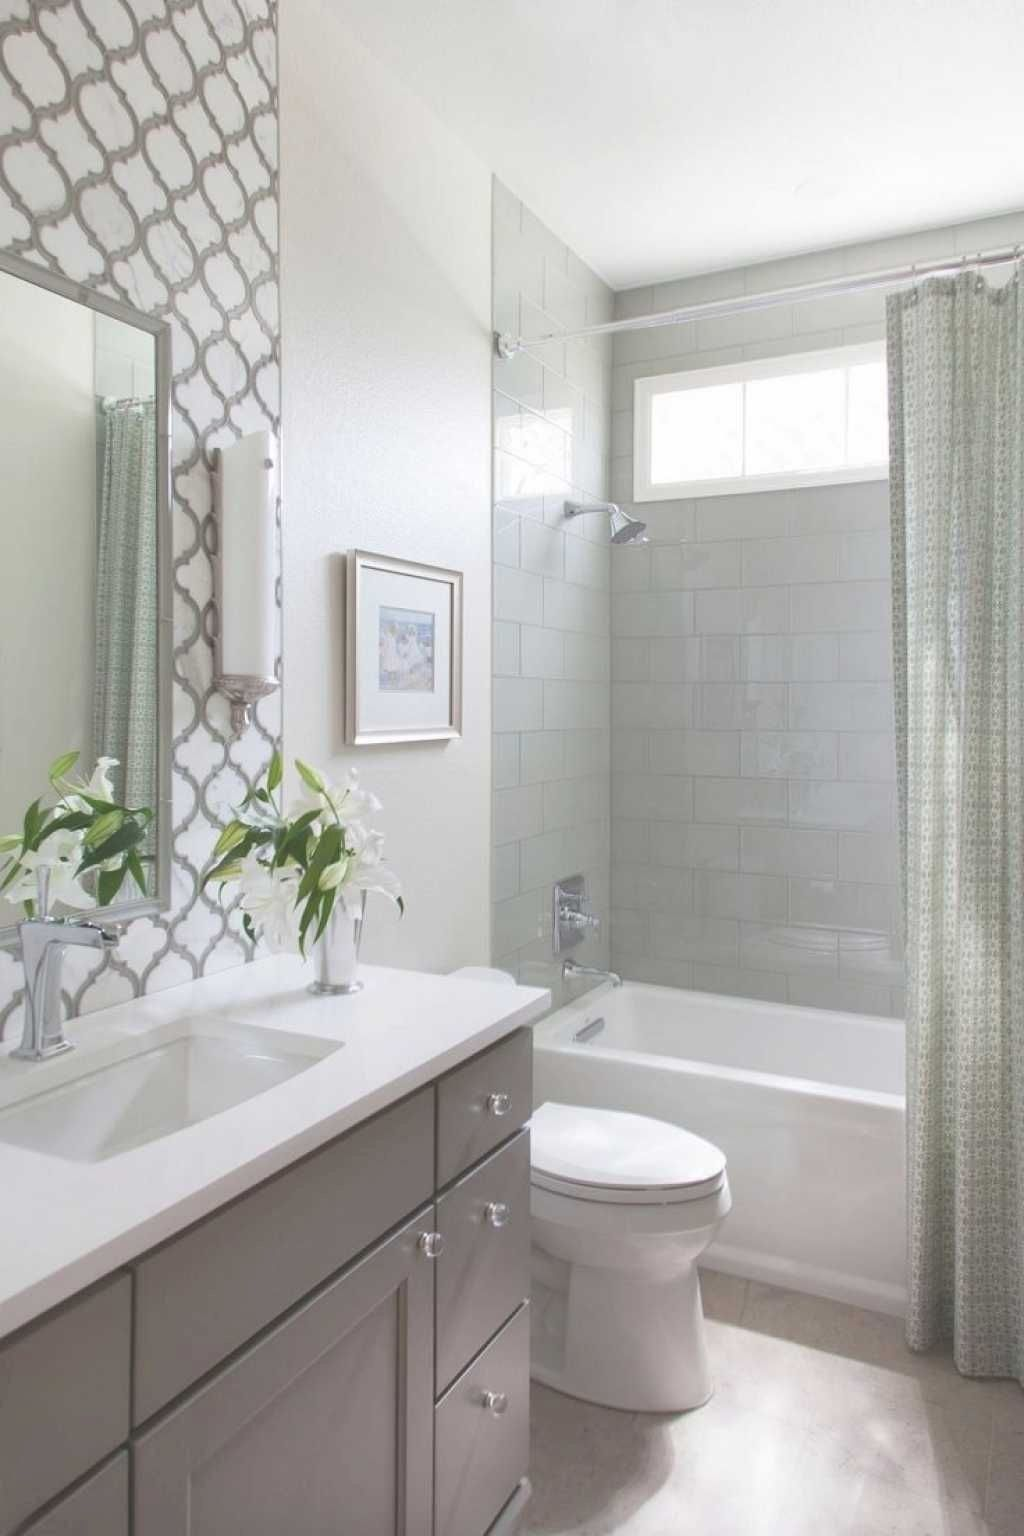 111 Awesome Small Bathroom Remodel Ideas On A Budget 1 Small